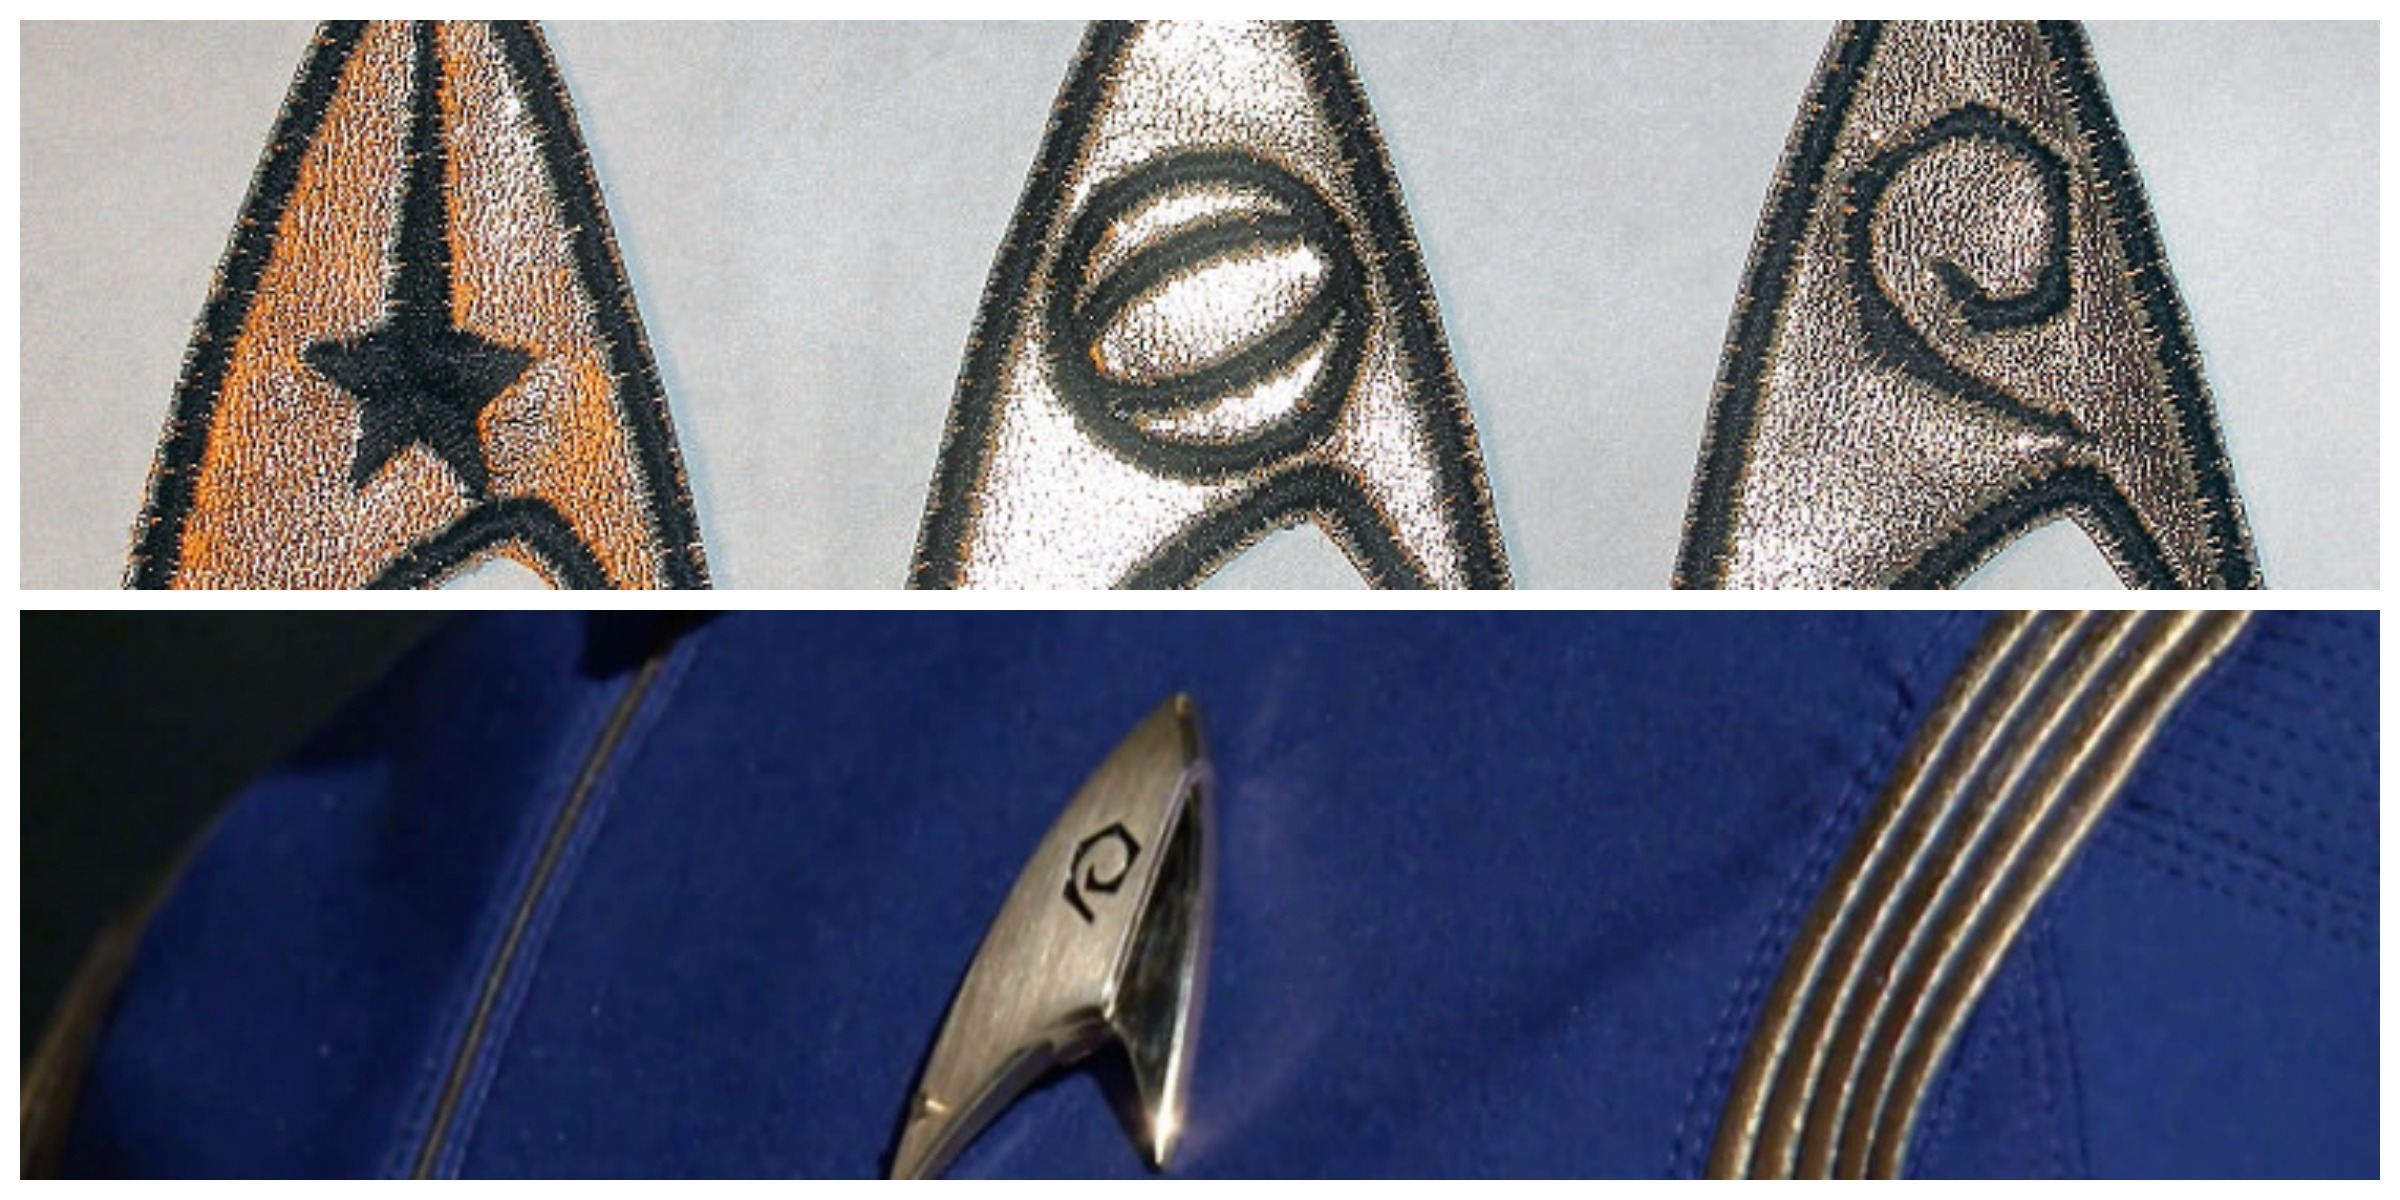 ABOVE: Original 'Star Trek' Starfleet patches. BELOW: A glimpse of the new uniform.